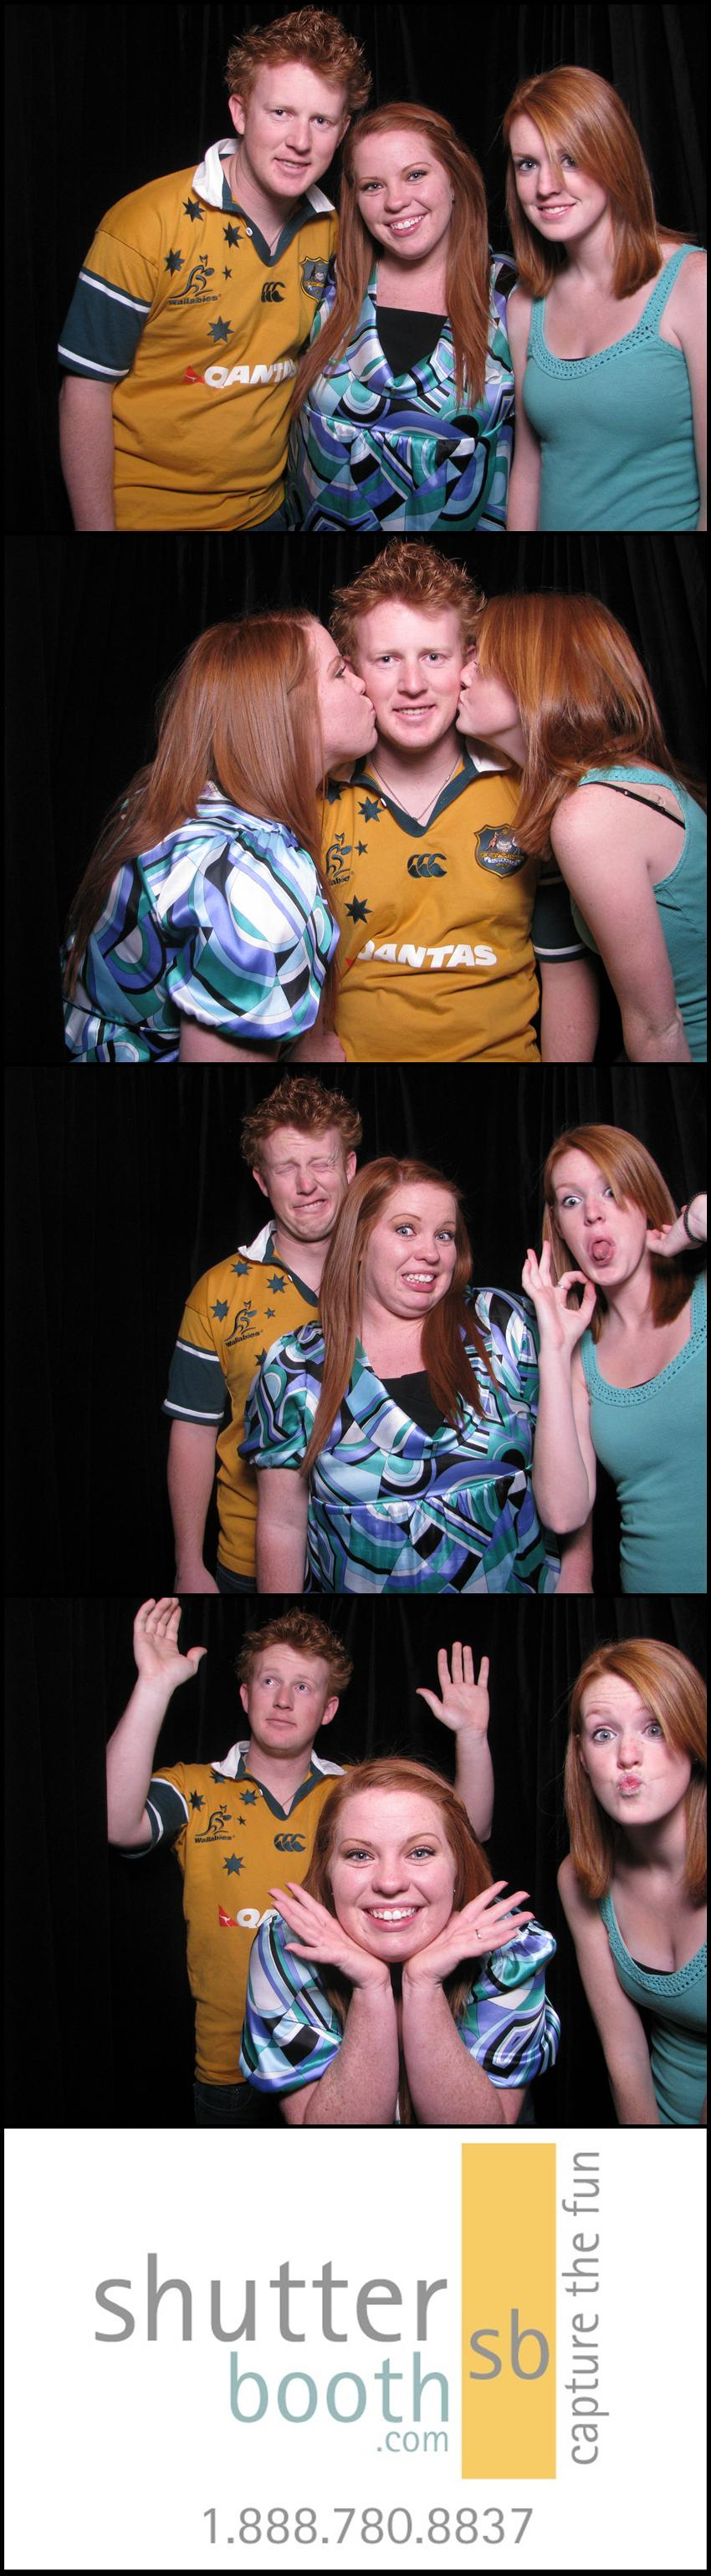 las-vegas-photo-booth-shutterbooth2